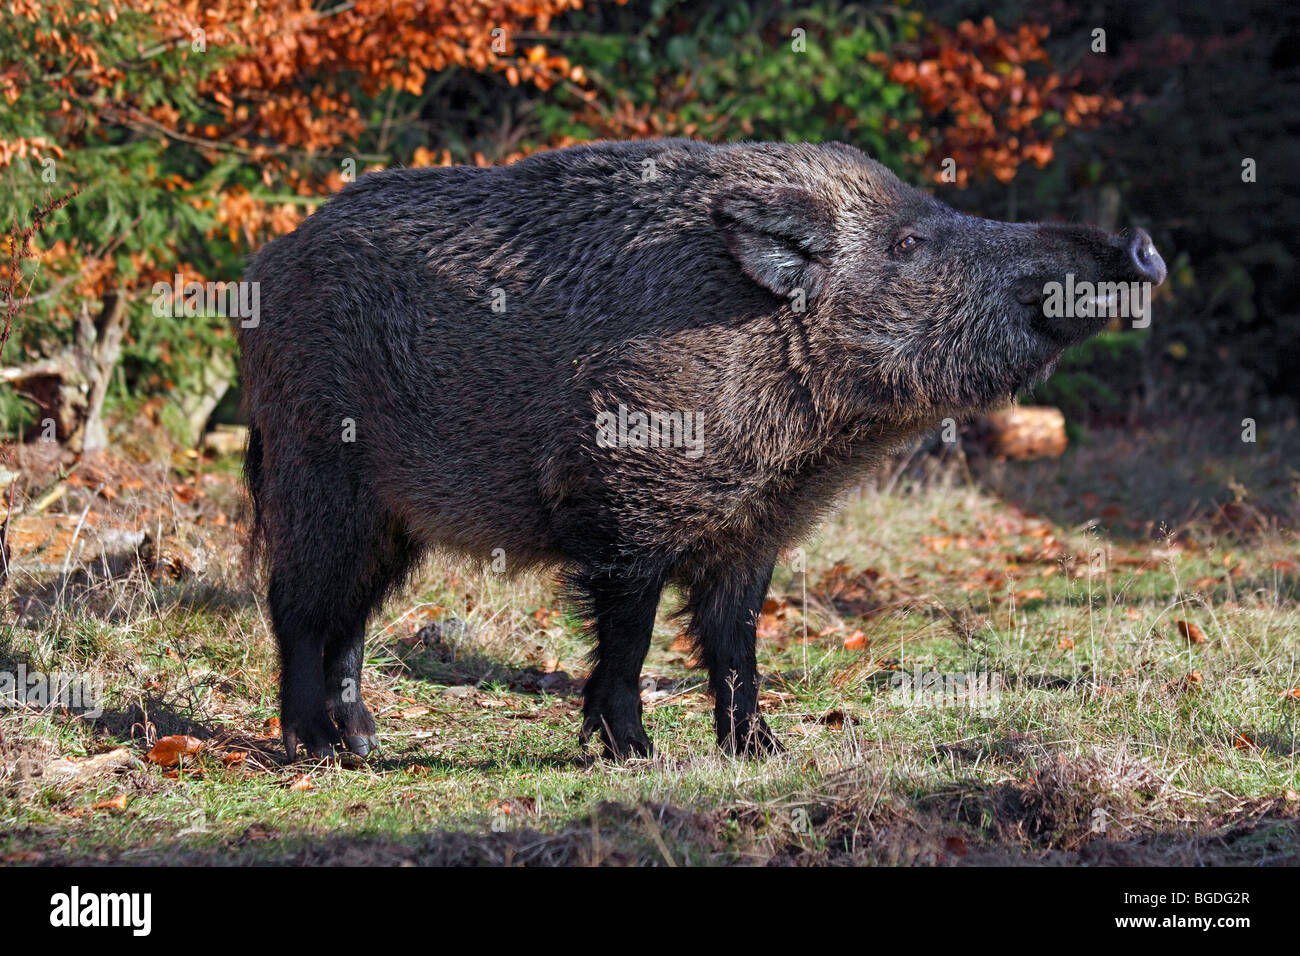 Pigs Mating Stock Photos & Pigs Mating Stock Images - Alamy